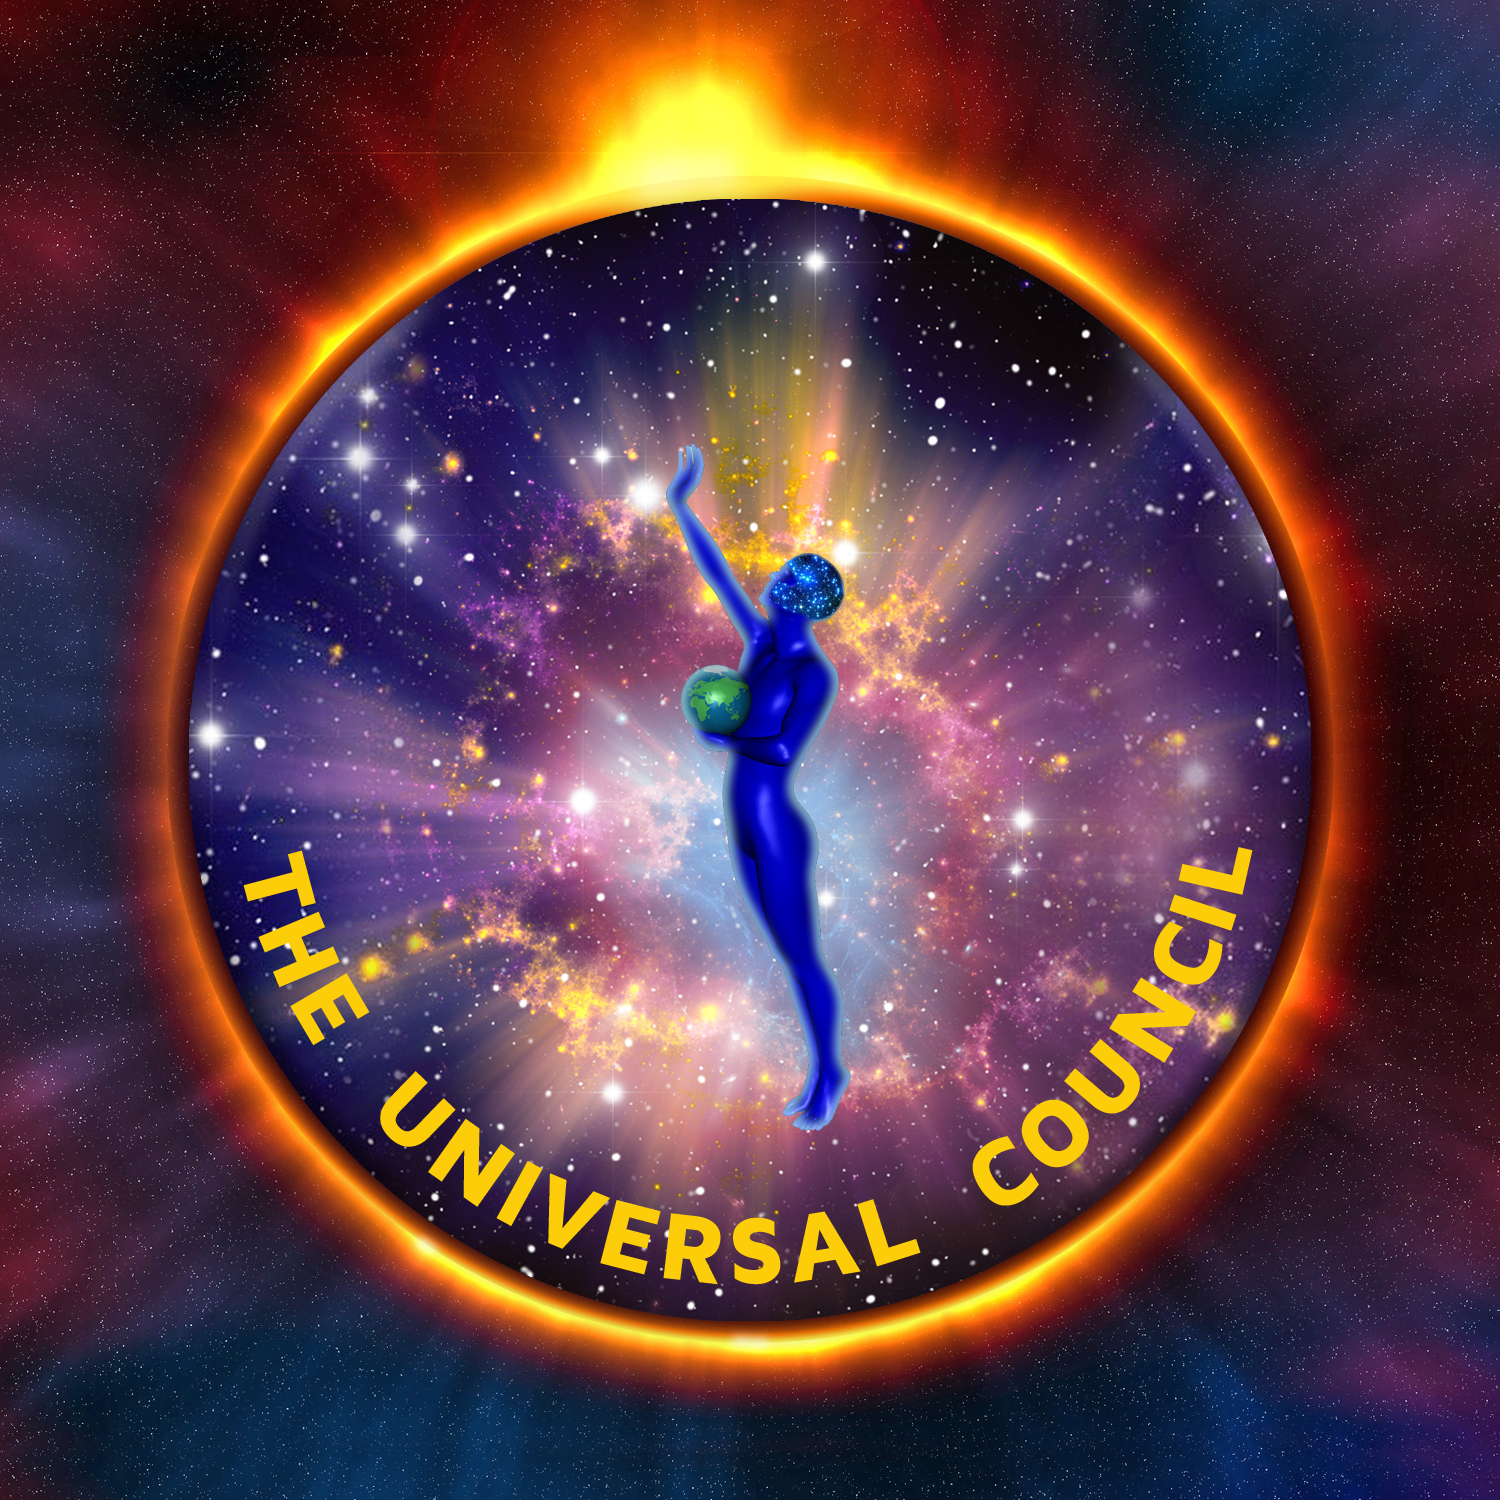 universal-council-logo-square-v4-rgb-merged-final.jpg